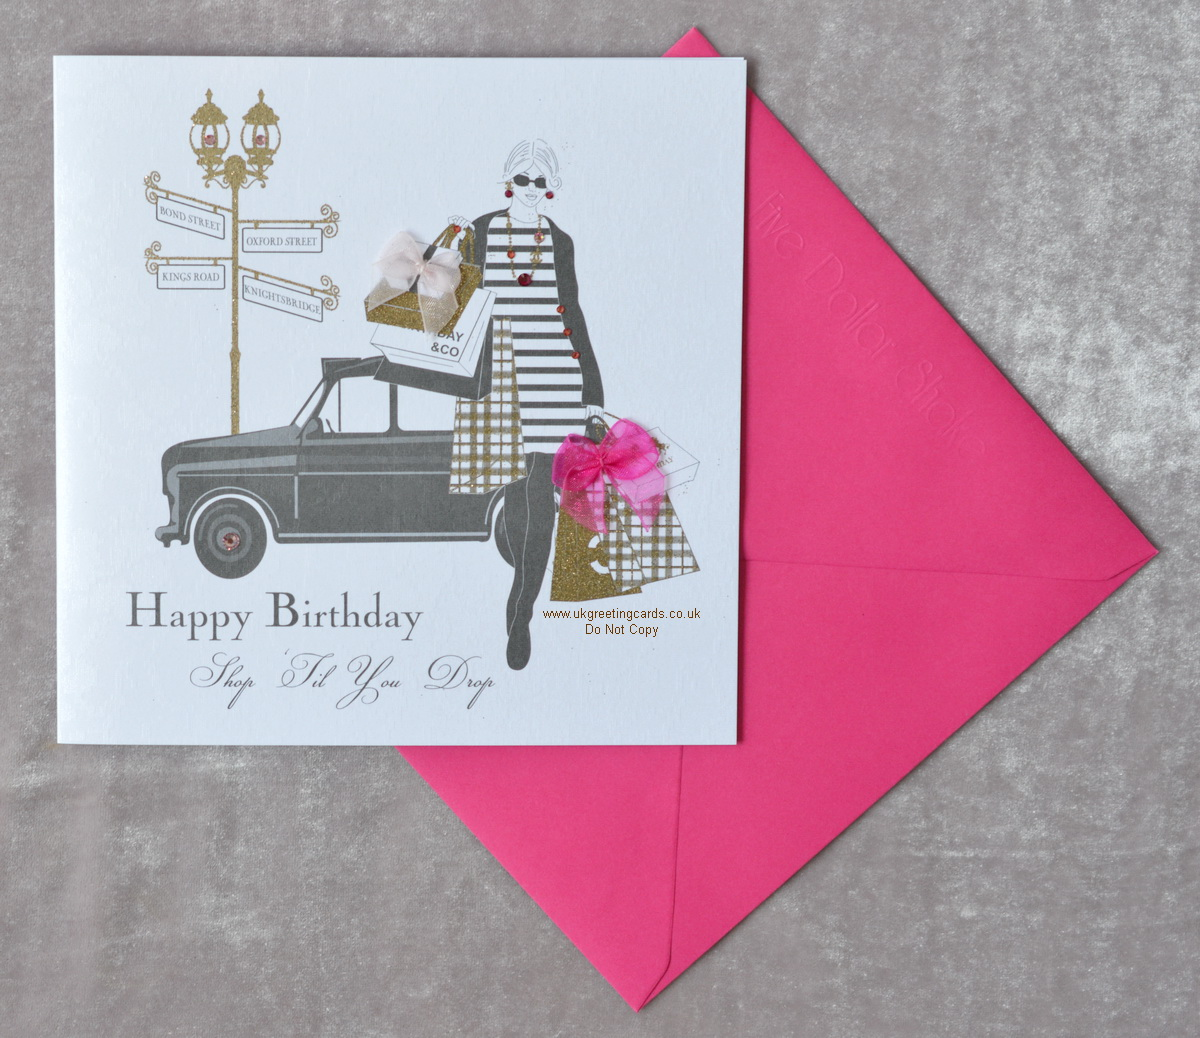 Uk greeting cards directory stuuning handmade birthday cards for women on the card there is a london taxi picking up uk greeting cards m4hsunfo Images